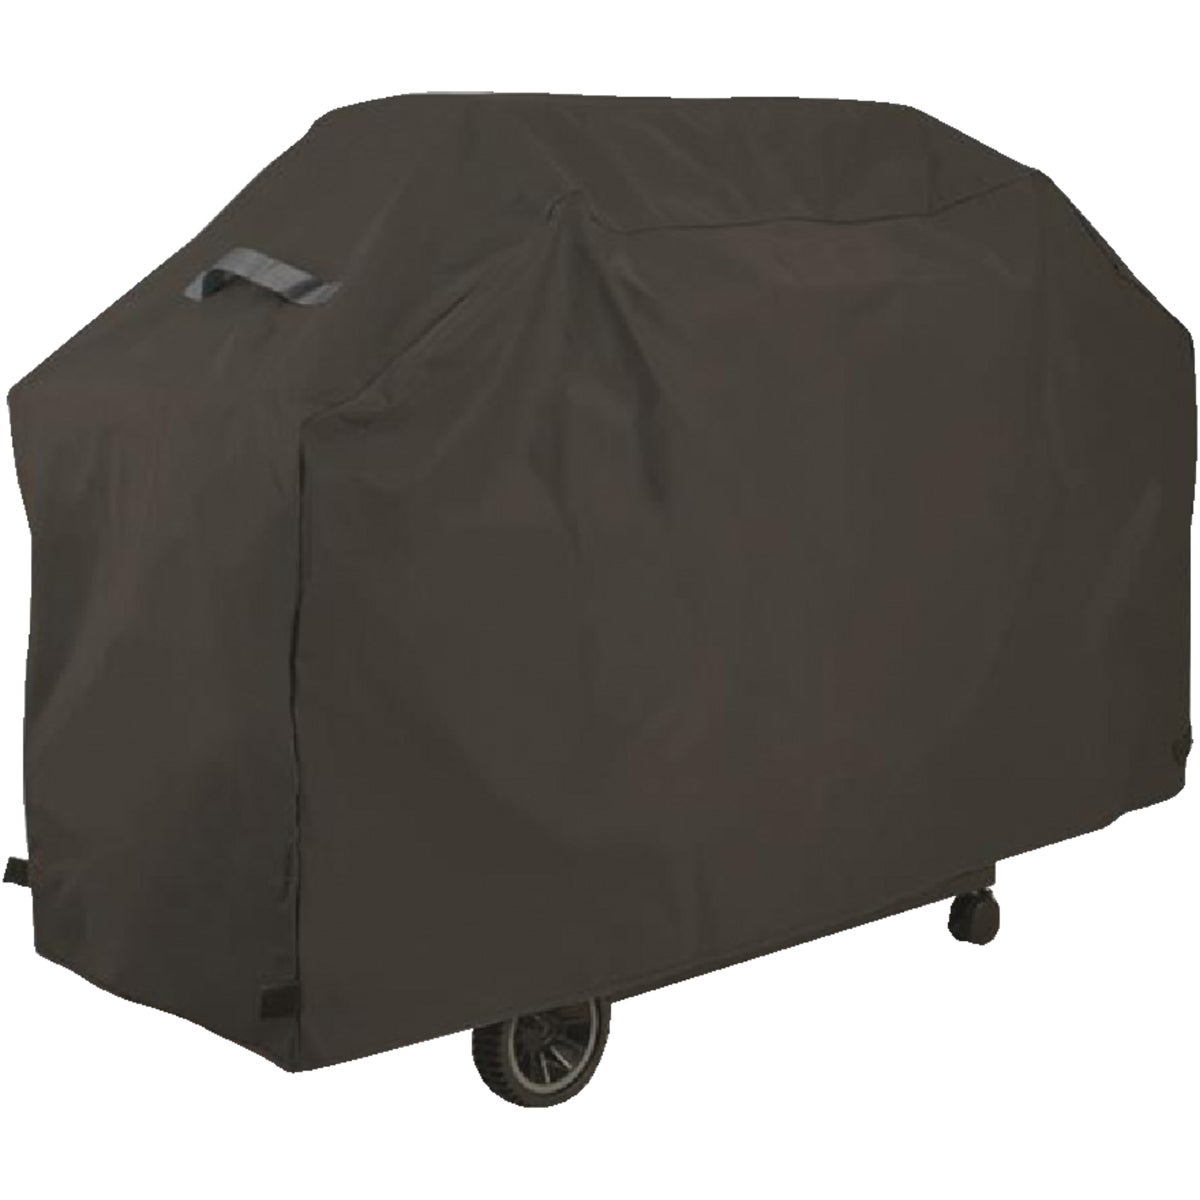 GRILL COVER - 50557 by Onward Multi Corp  N